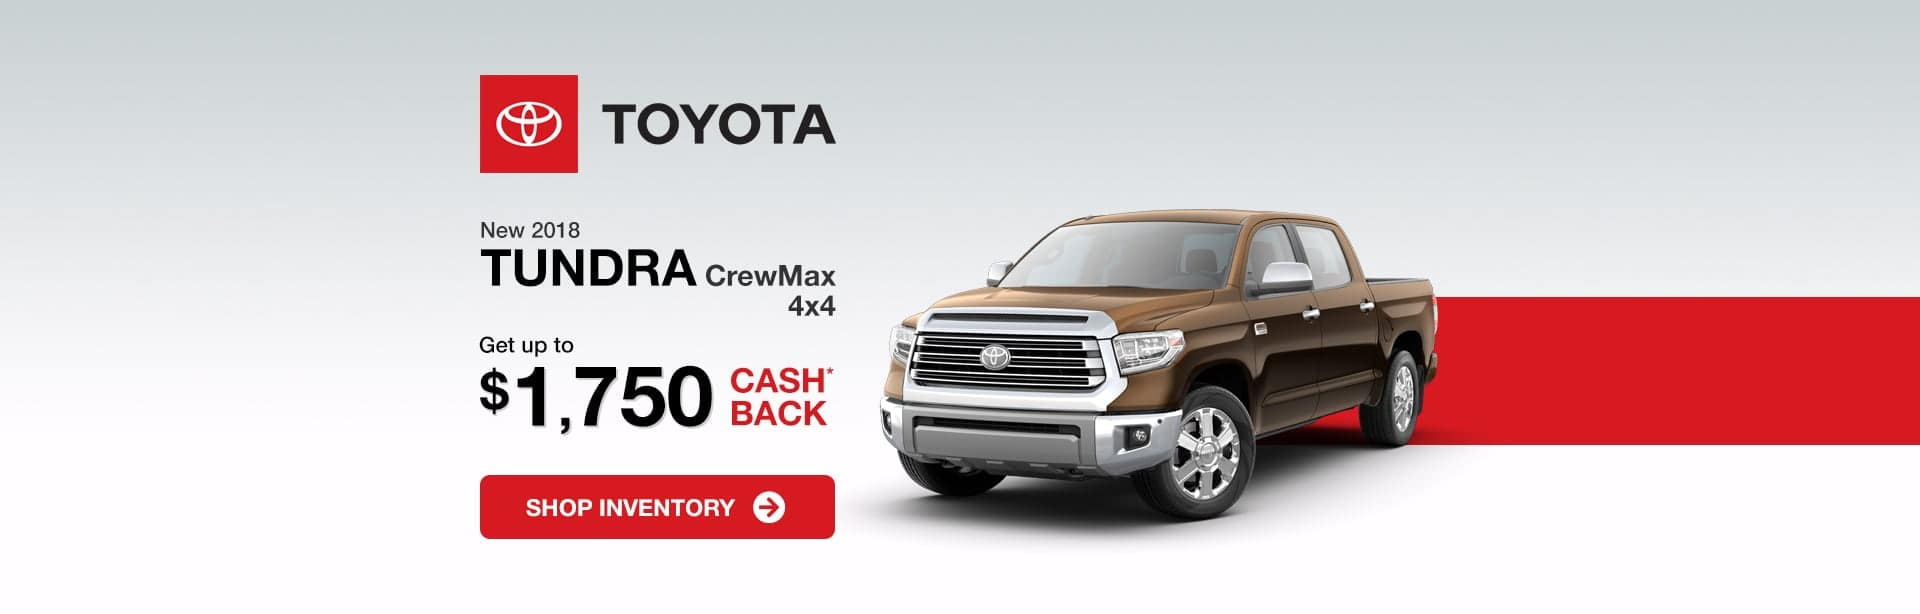 Toyota Tundra Indianapolis Cash Back Offer